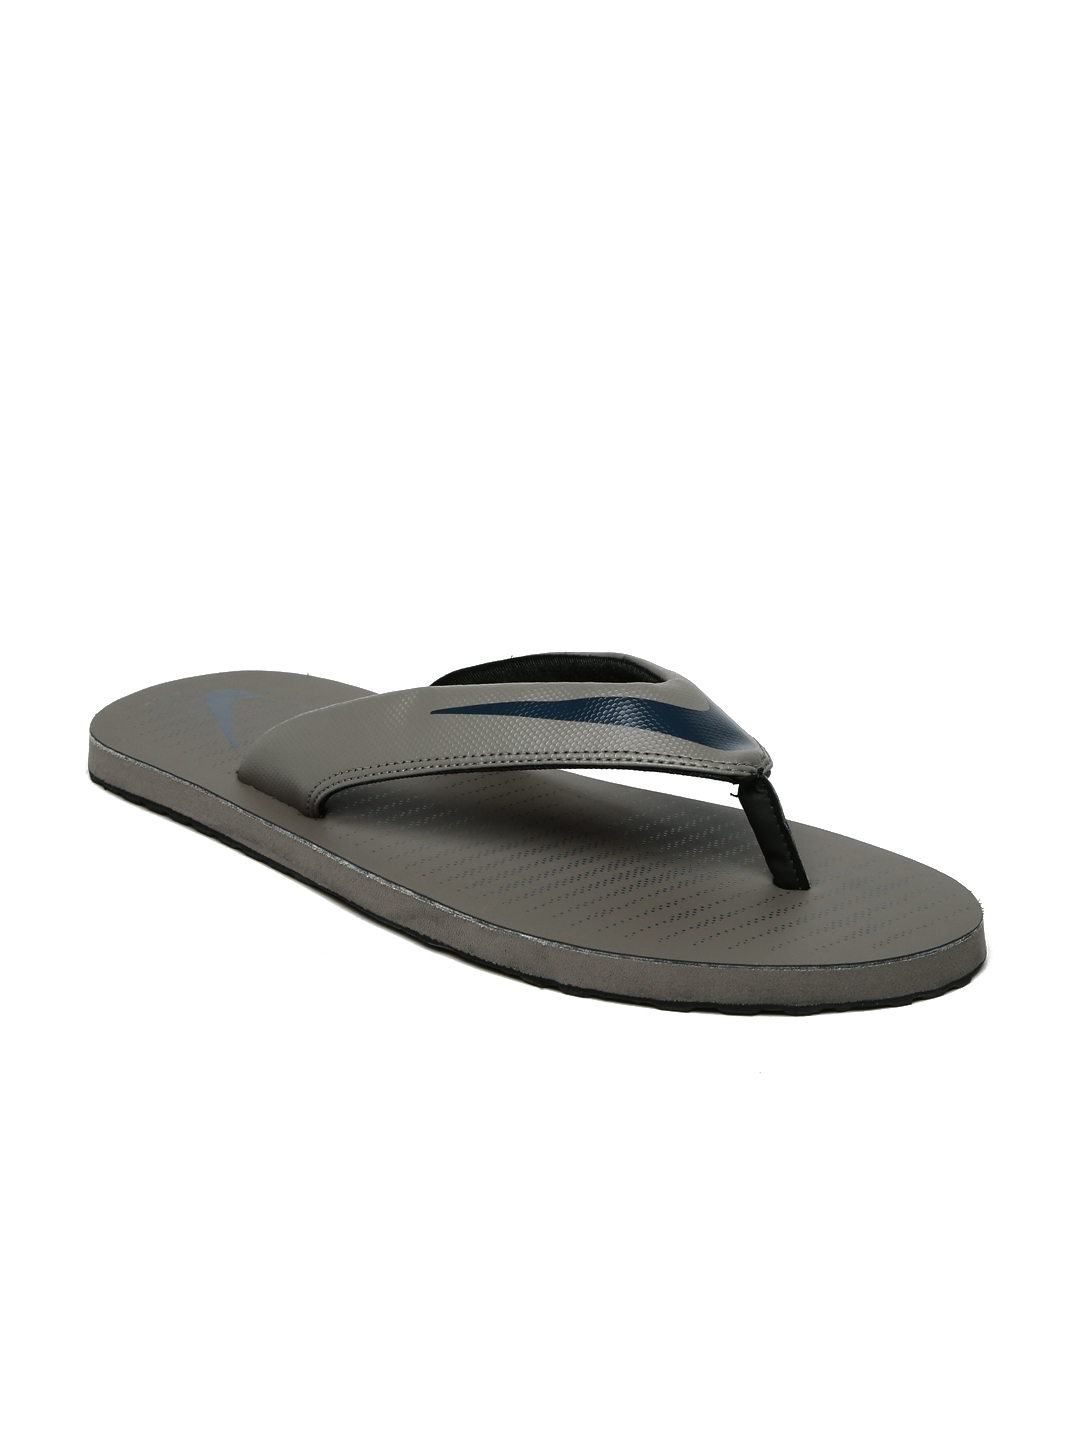 8856de3b8 Buy Nike Men Taupe Chroma Thong 5 Flip Flops - Flip Flops for Men ...